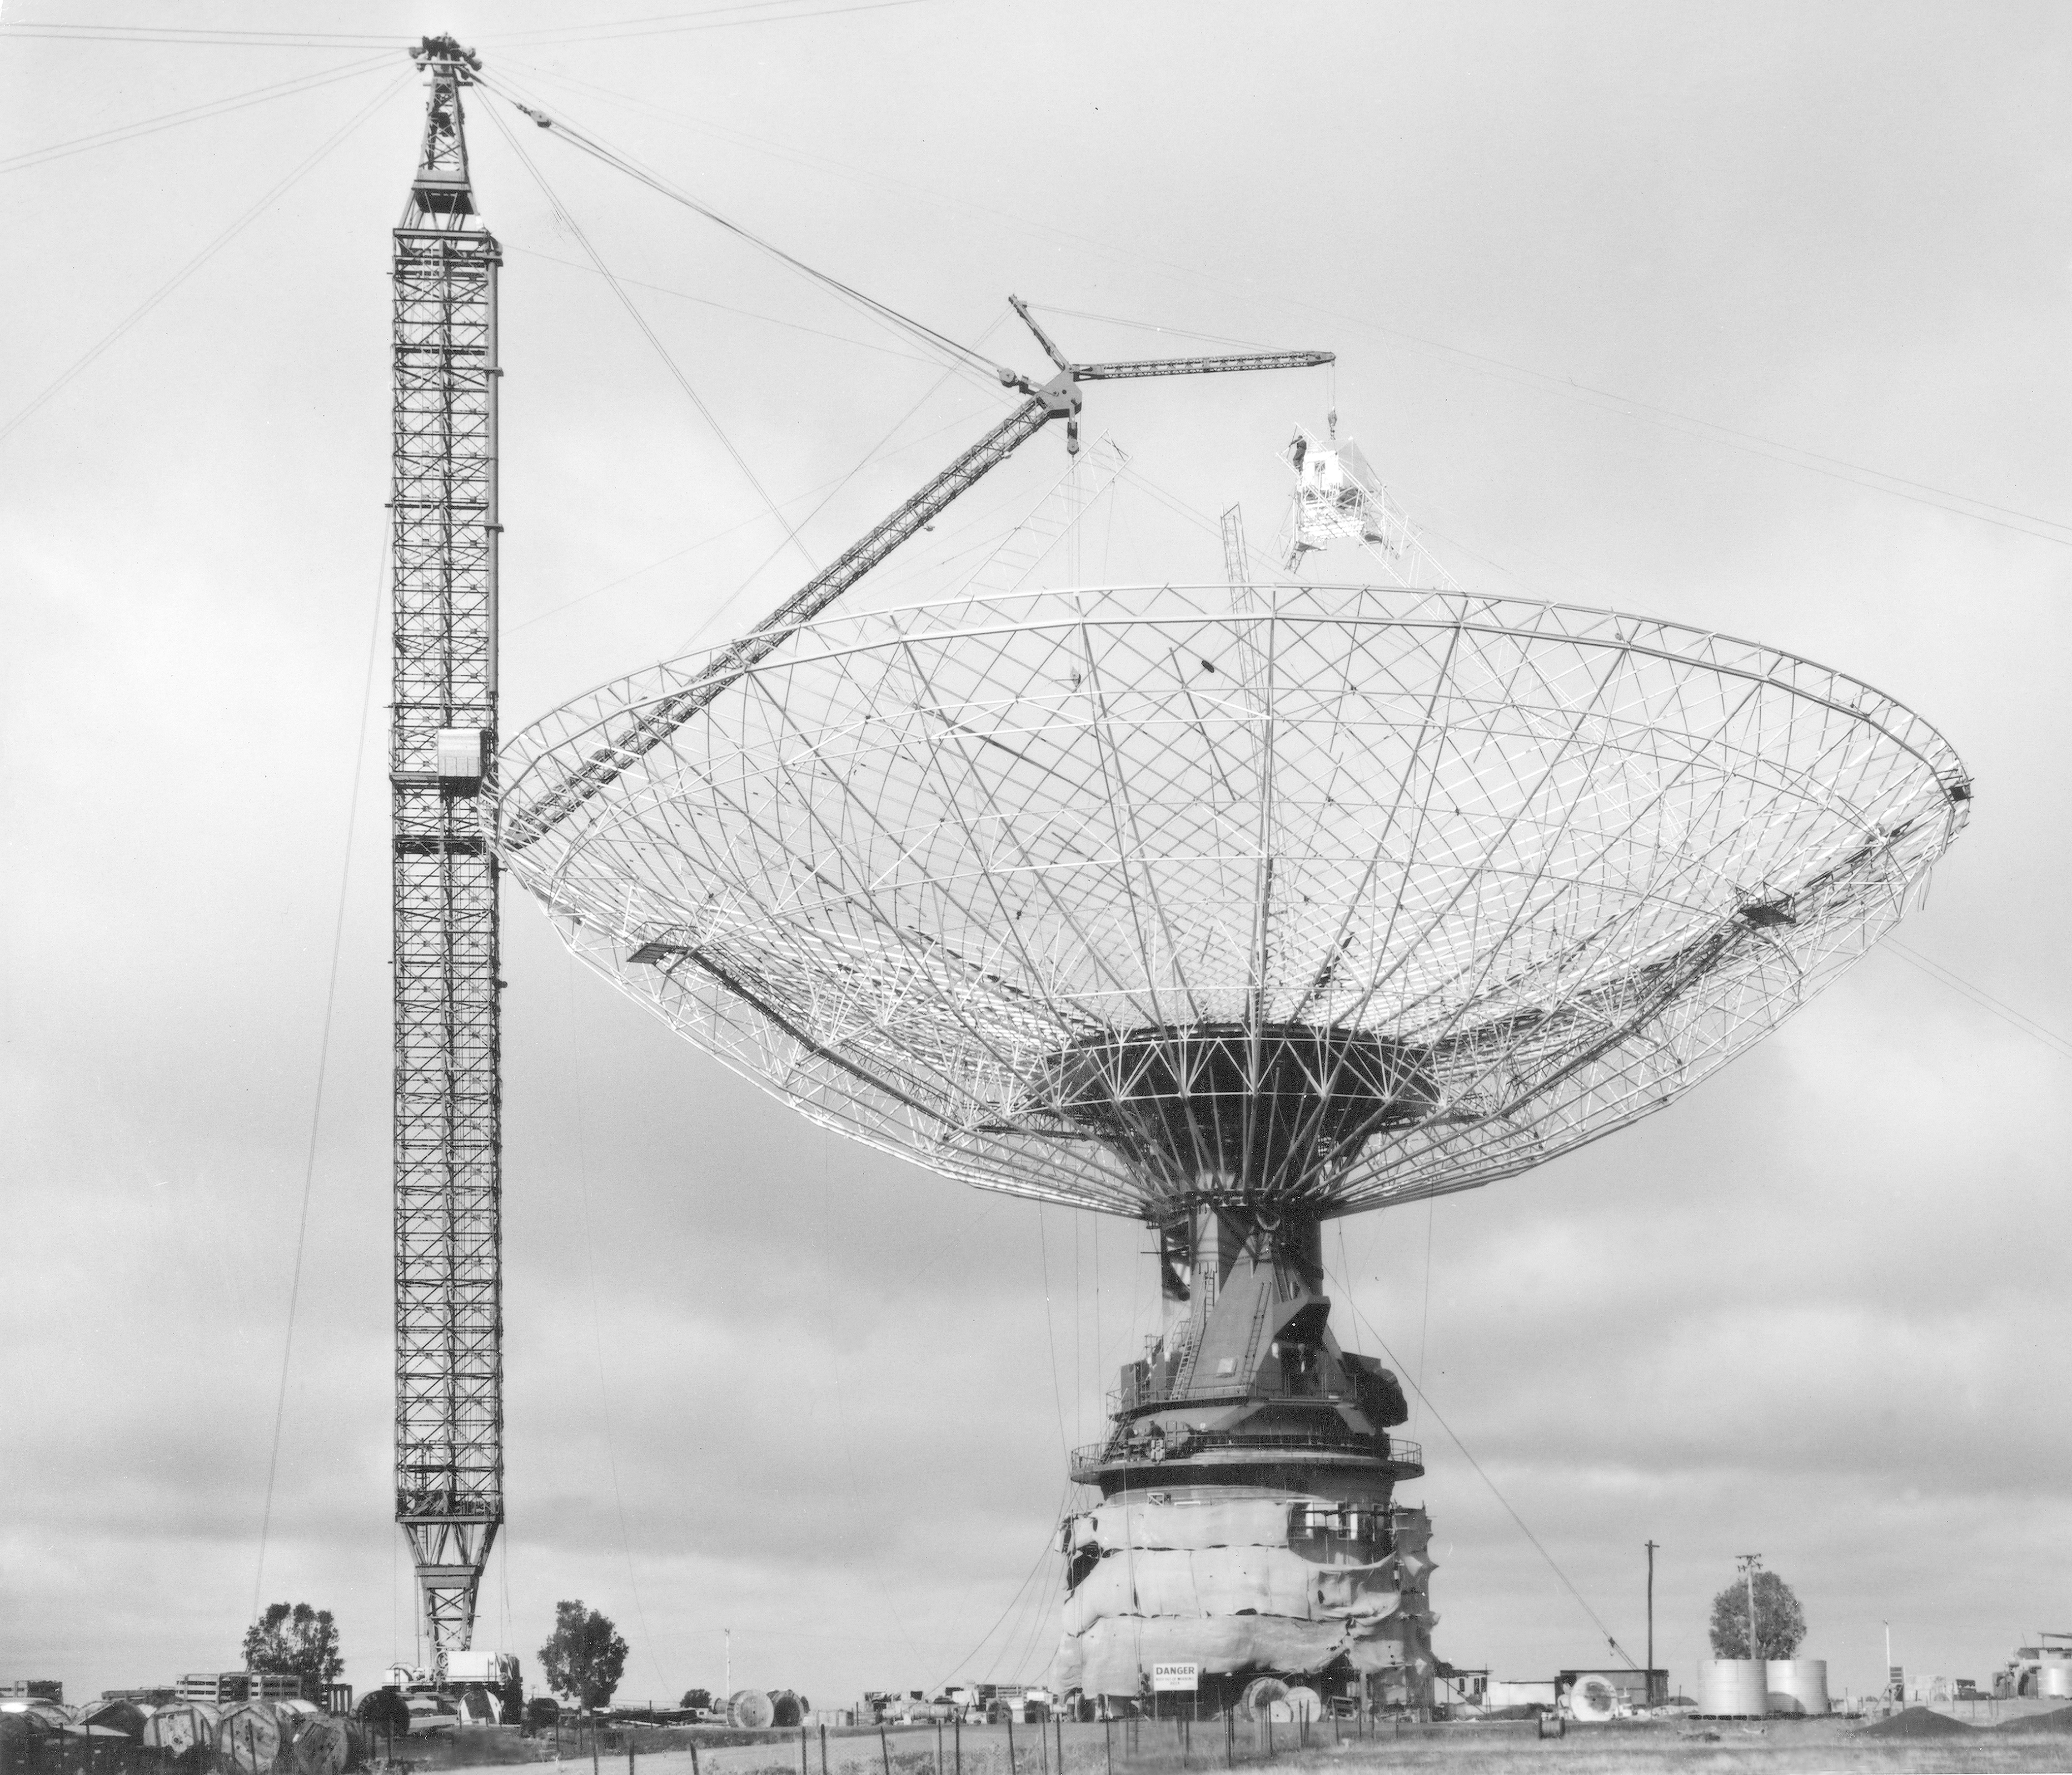 The skeleton of the large telescope being built with the usage of a crane, Image is black and white.